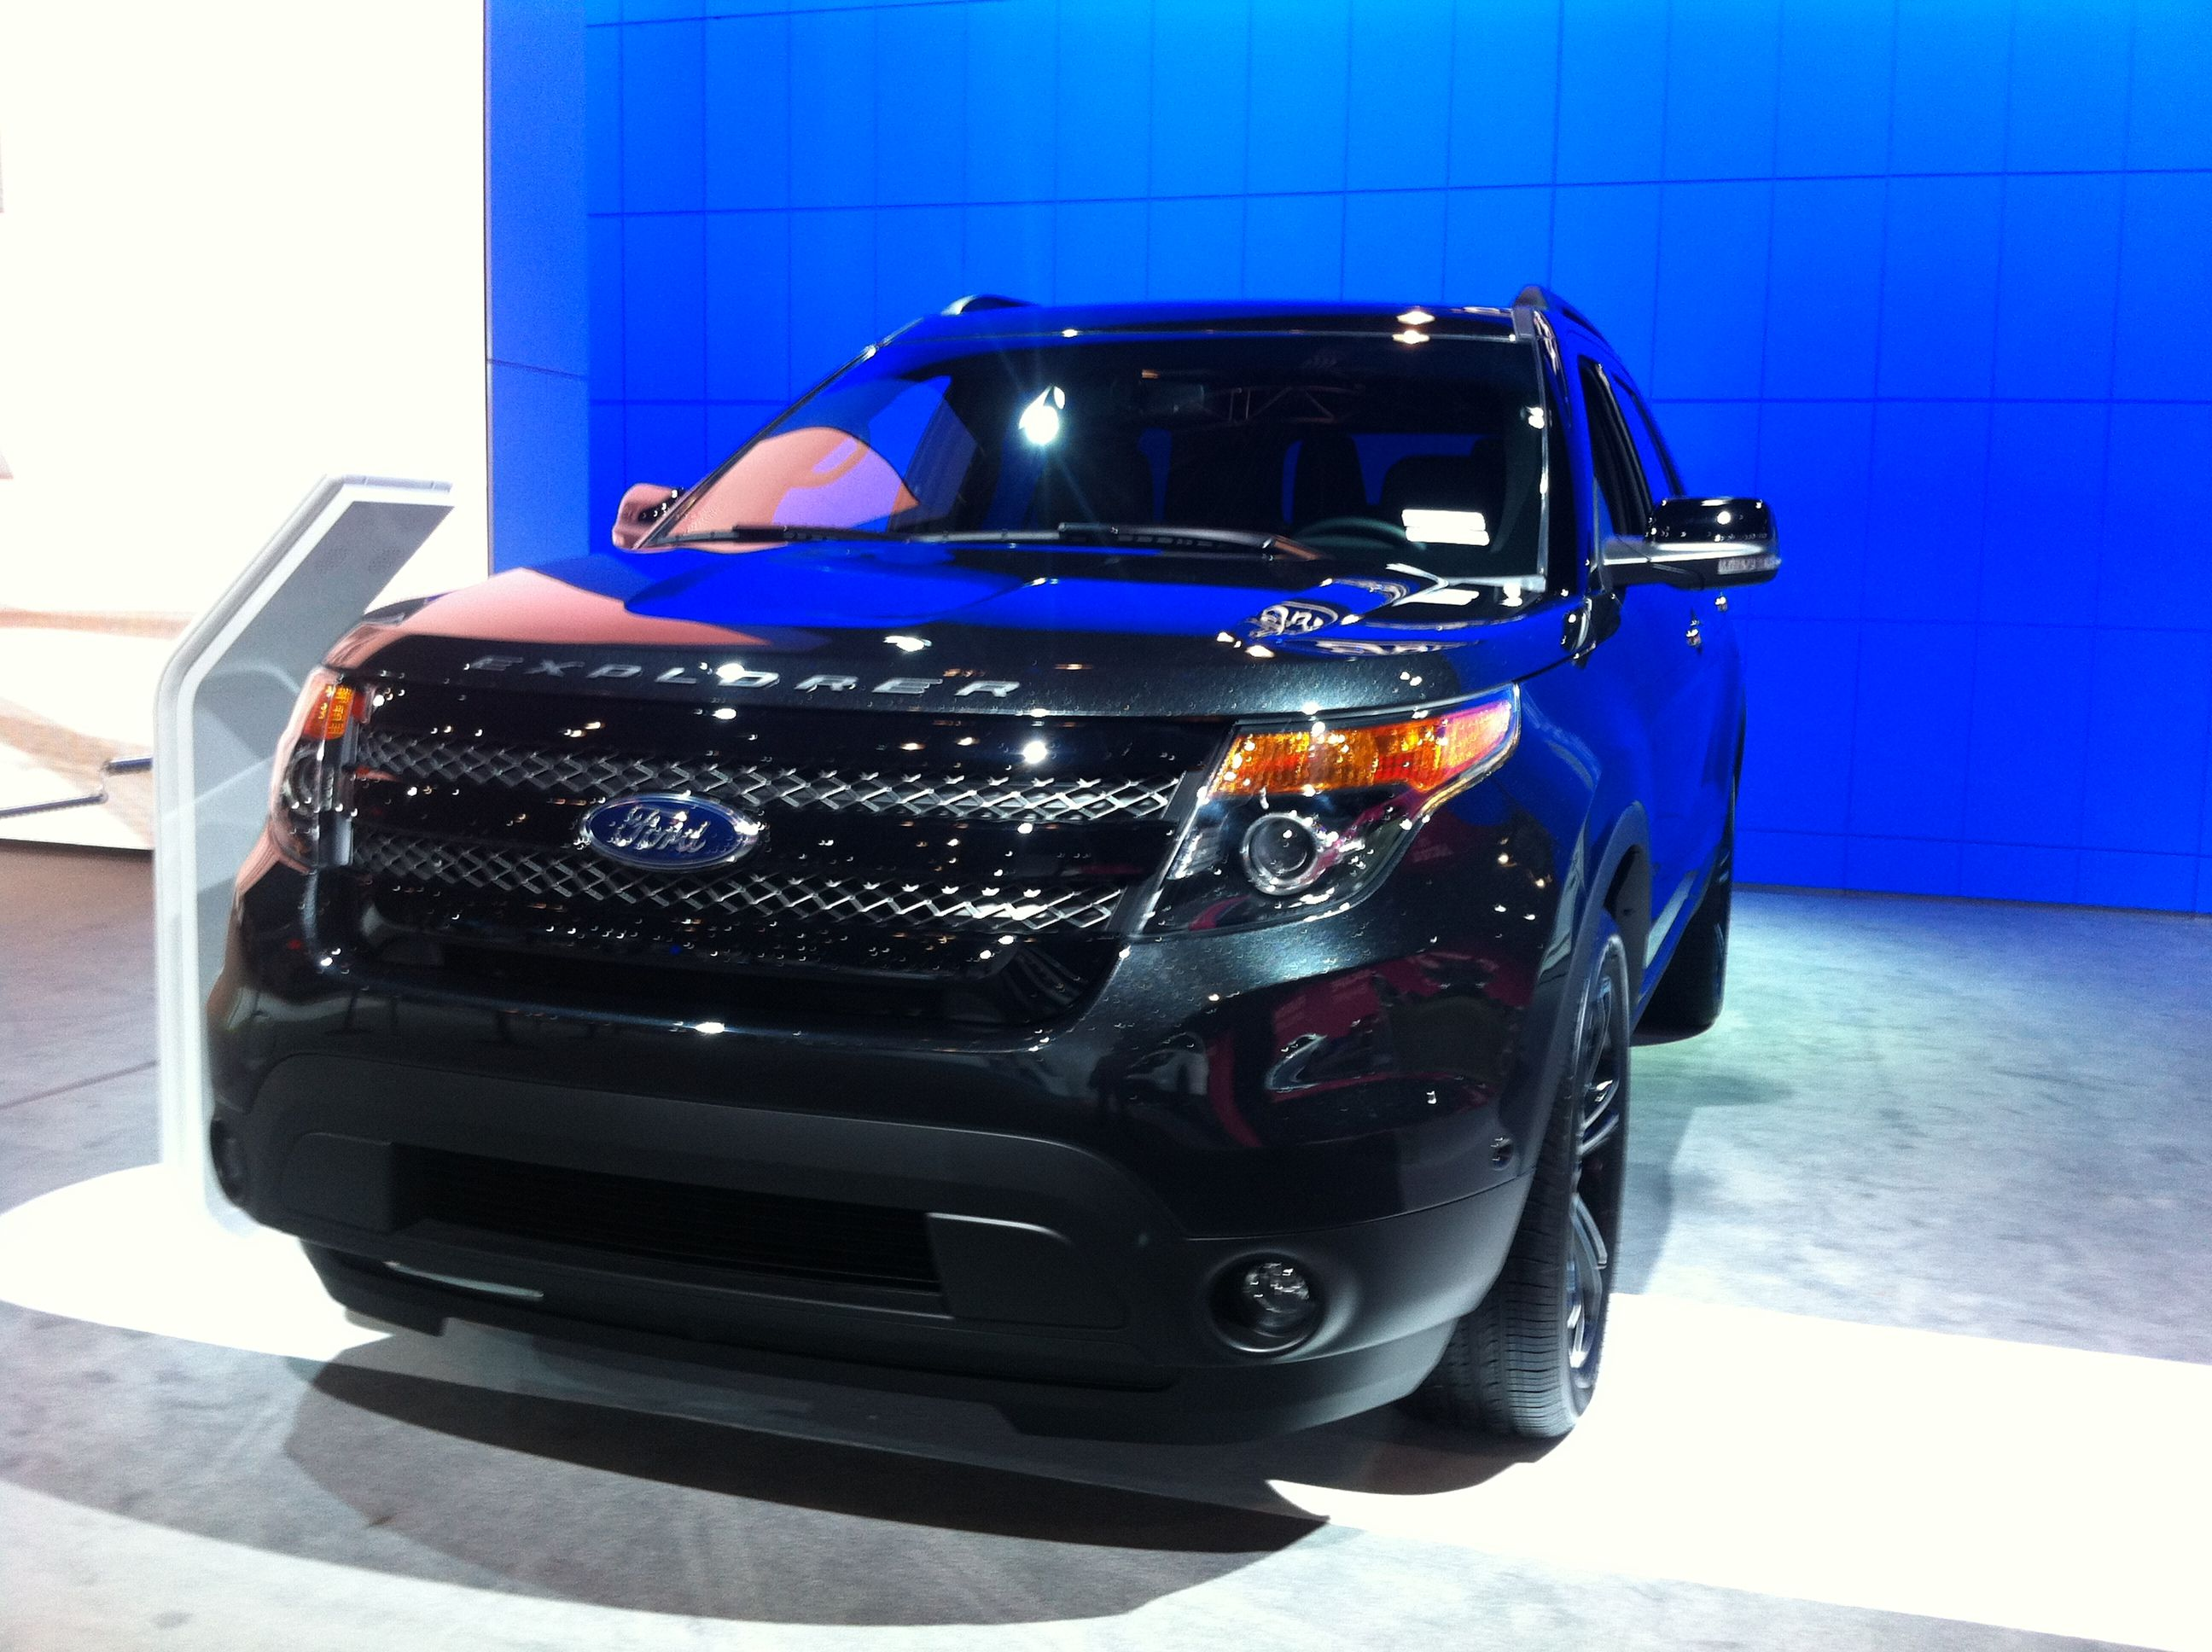 2013 black ford explorer 2013 ford explorer at the ny auto show 1024x764 2013 ford